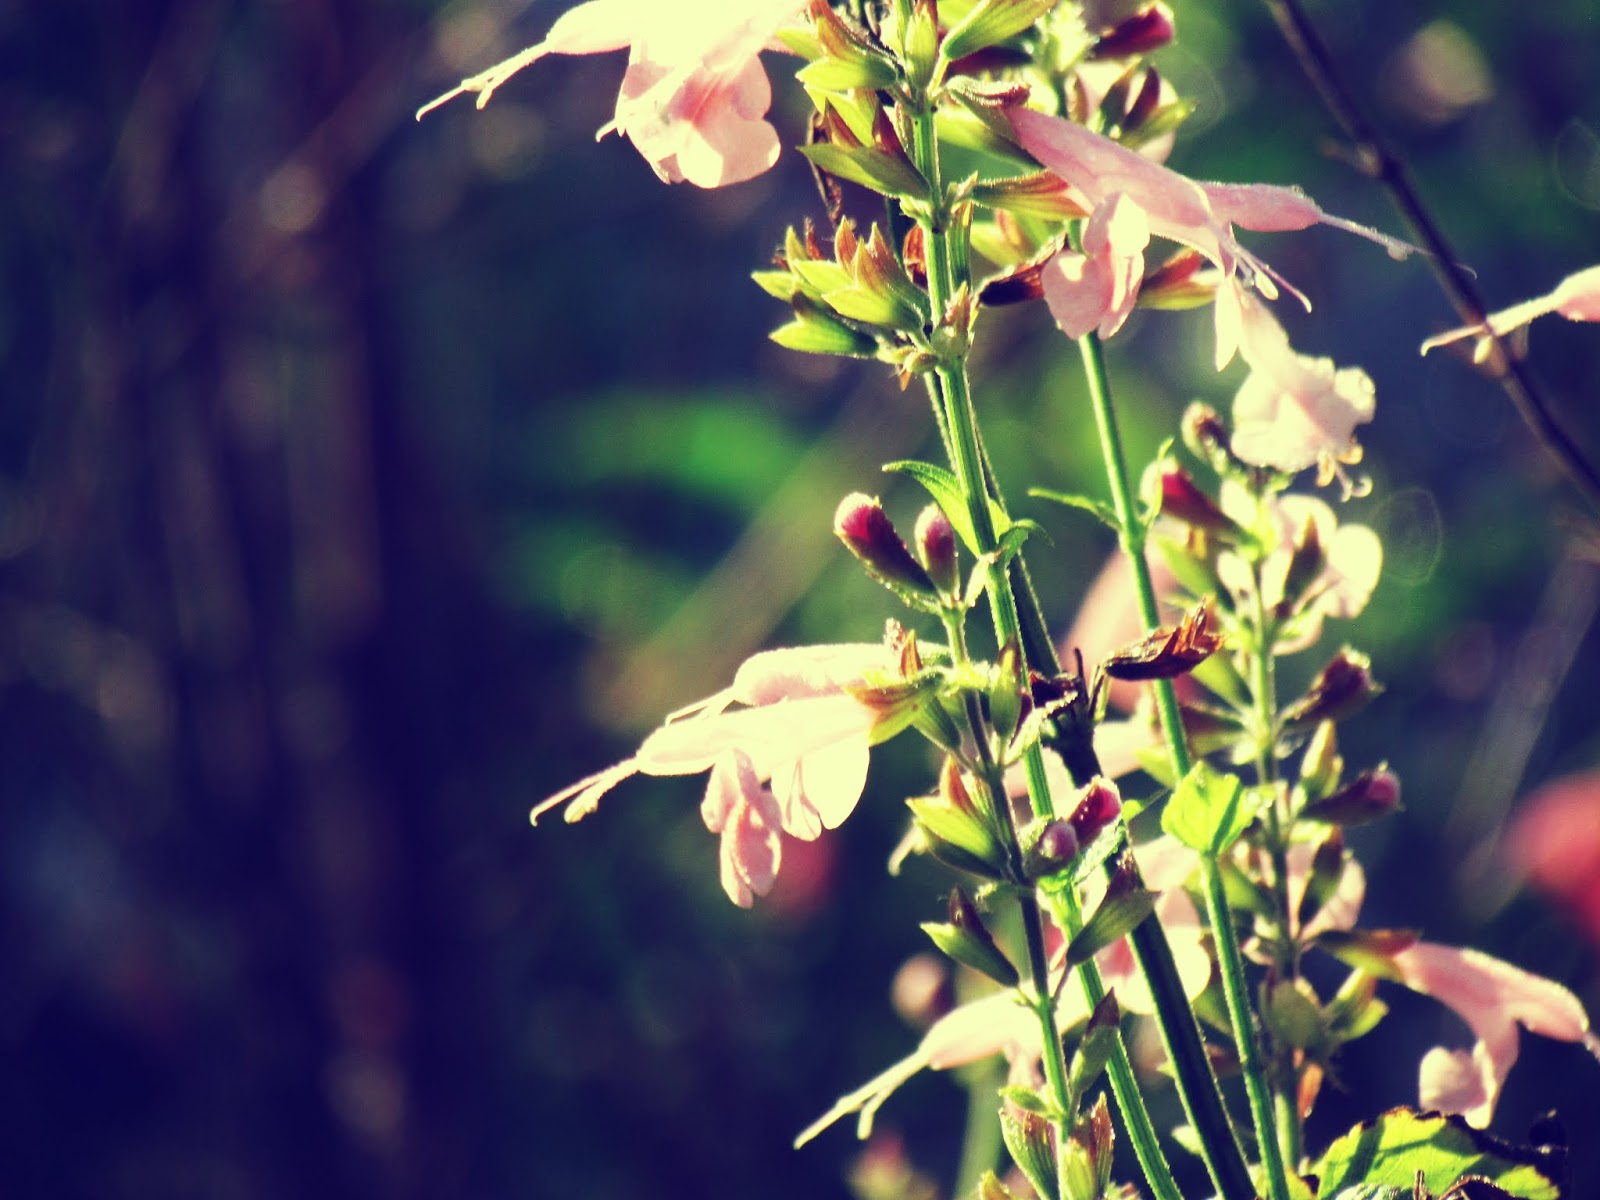 Natural pink florals and blurred photography in the pines of a butterfly meadow overlooking a bubbling brook